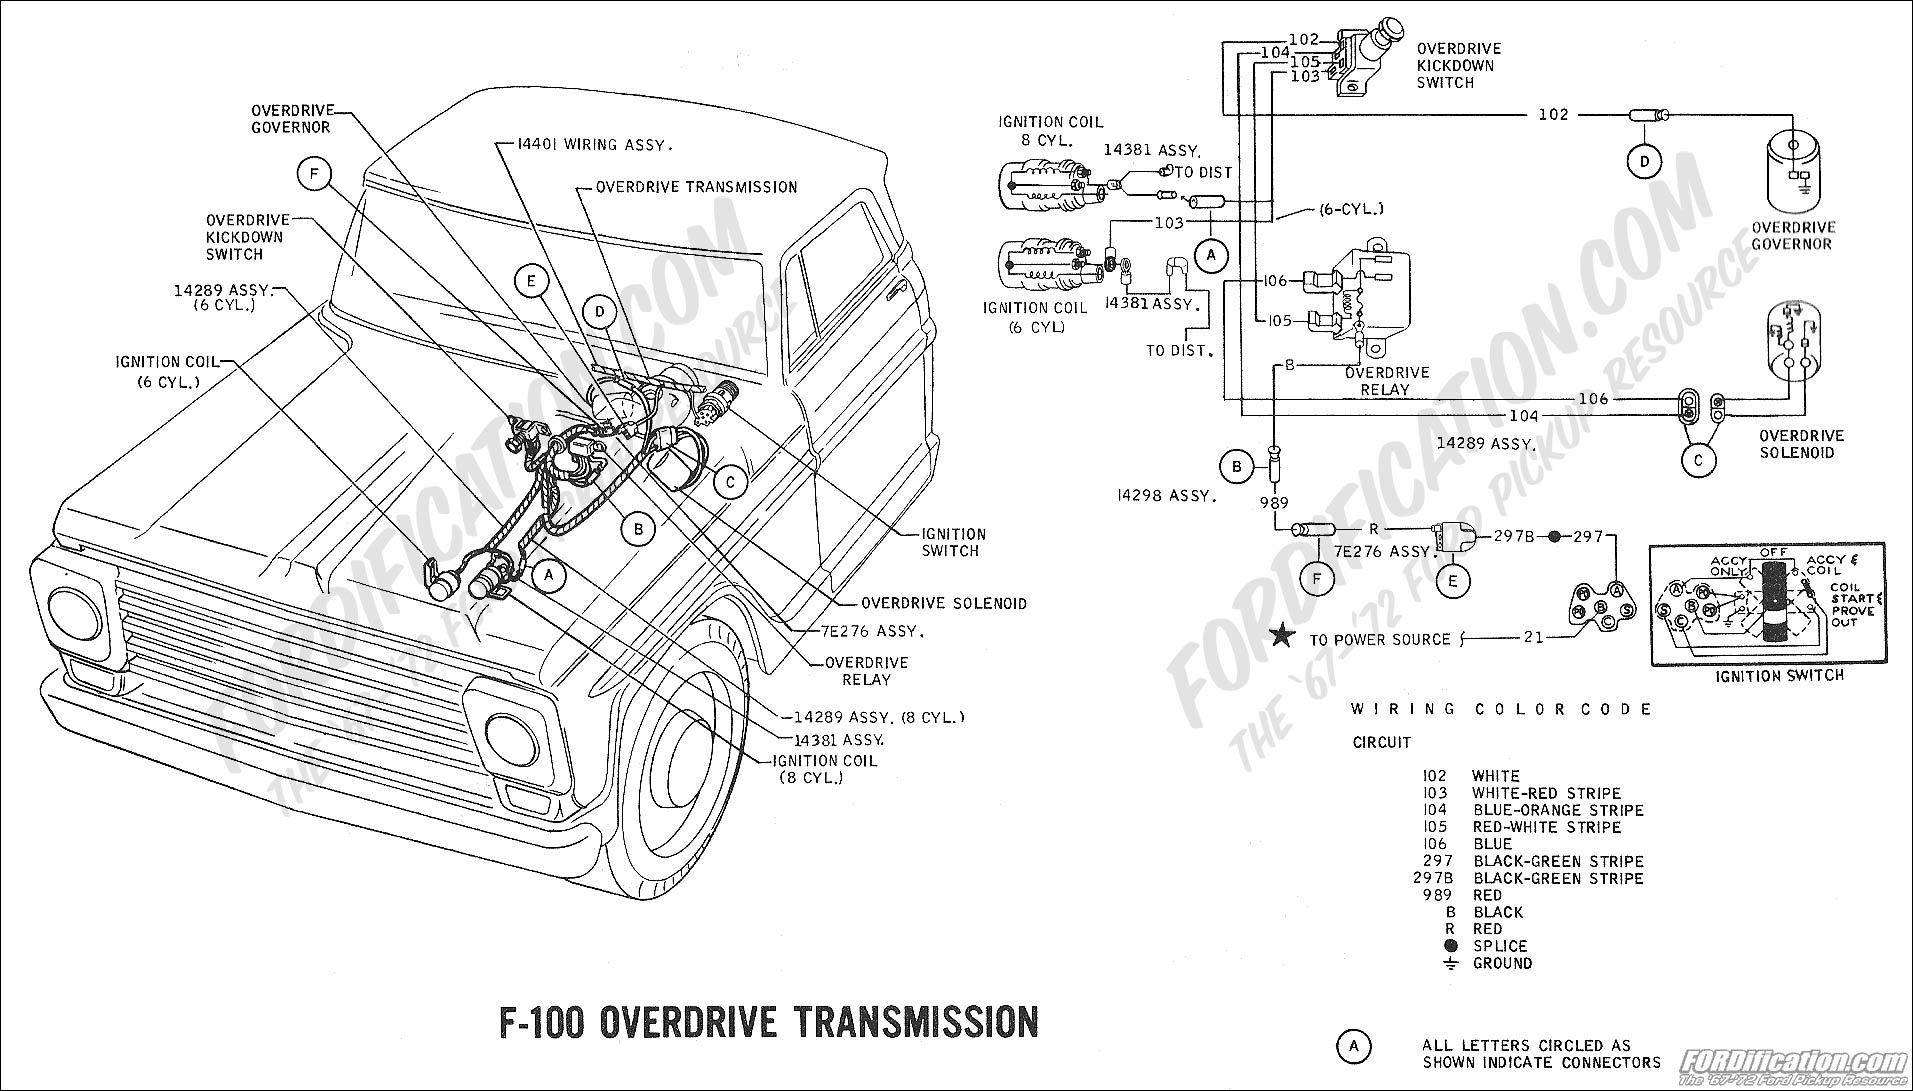 Wiring Diagram For 1969 F100 Ranger 390 Three On The Tree With Overdrive